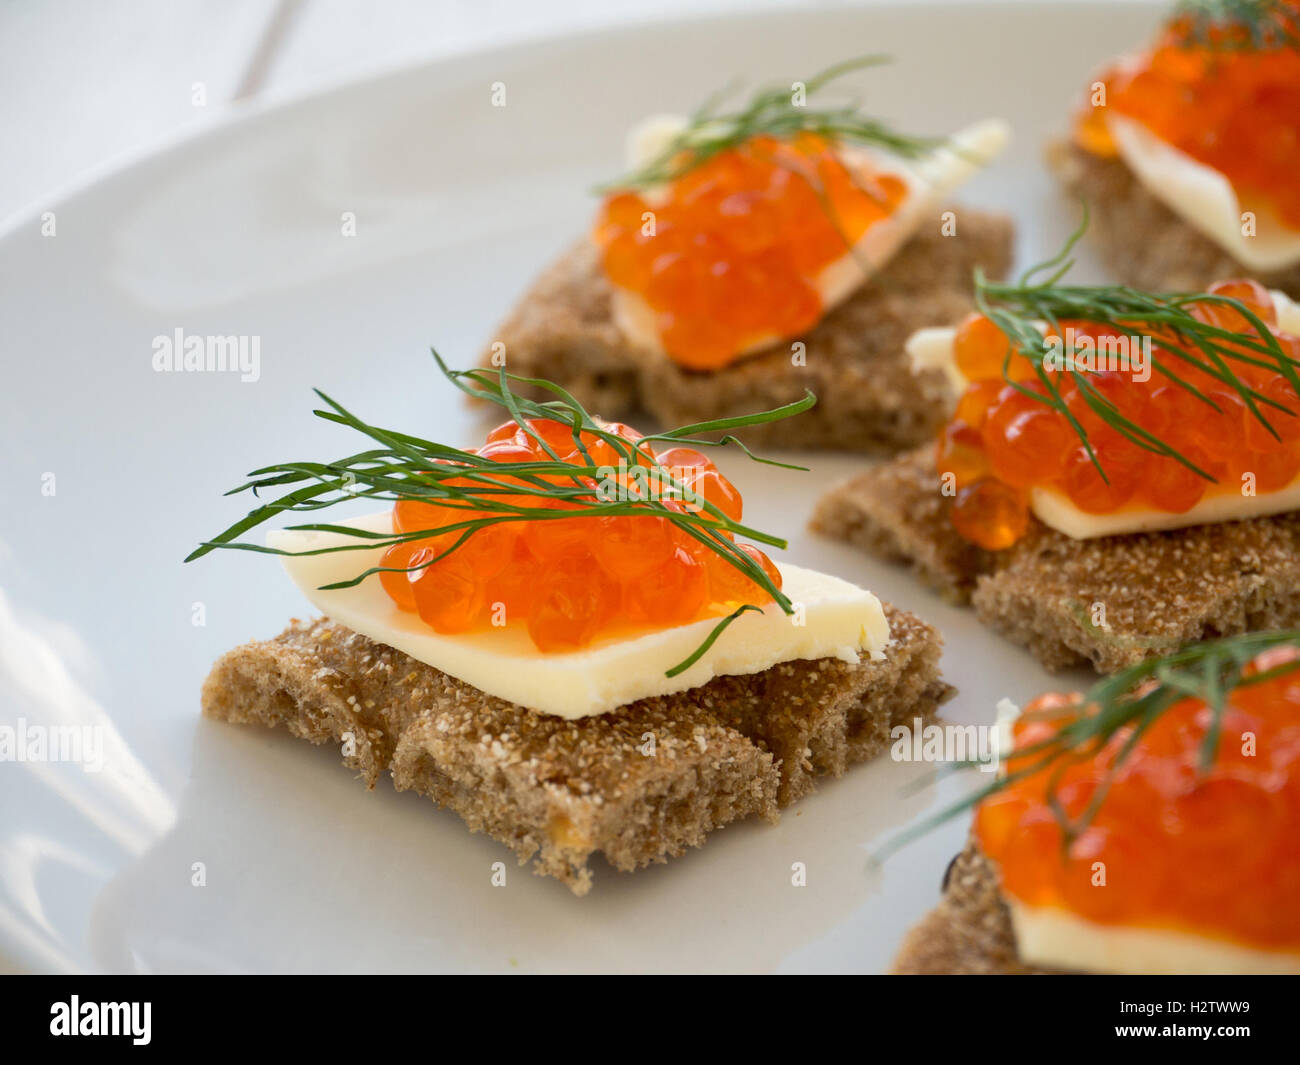 Canapes with red caviar and butter closeup - Stock Image